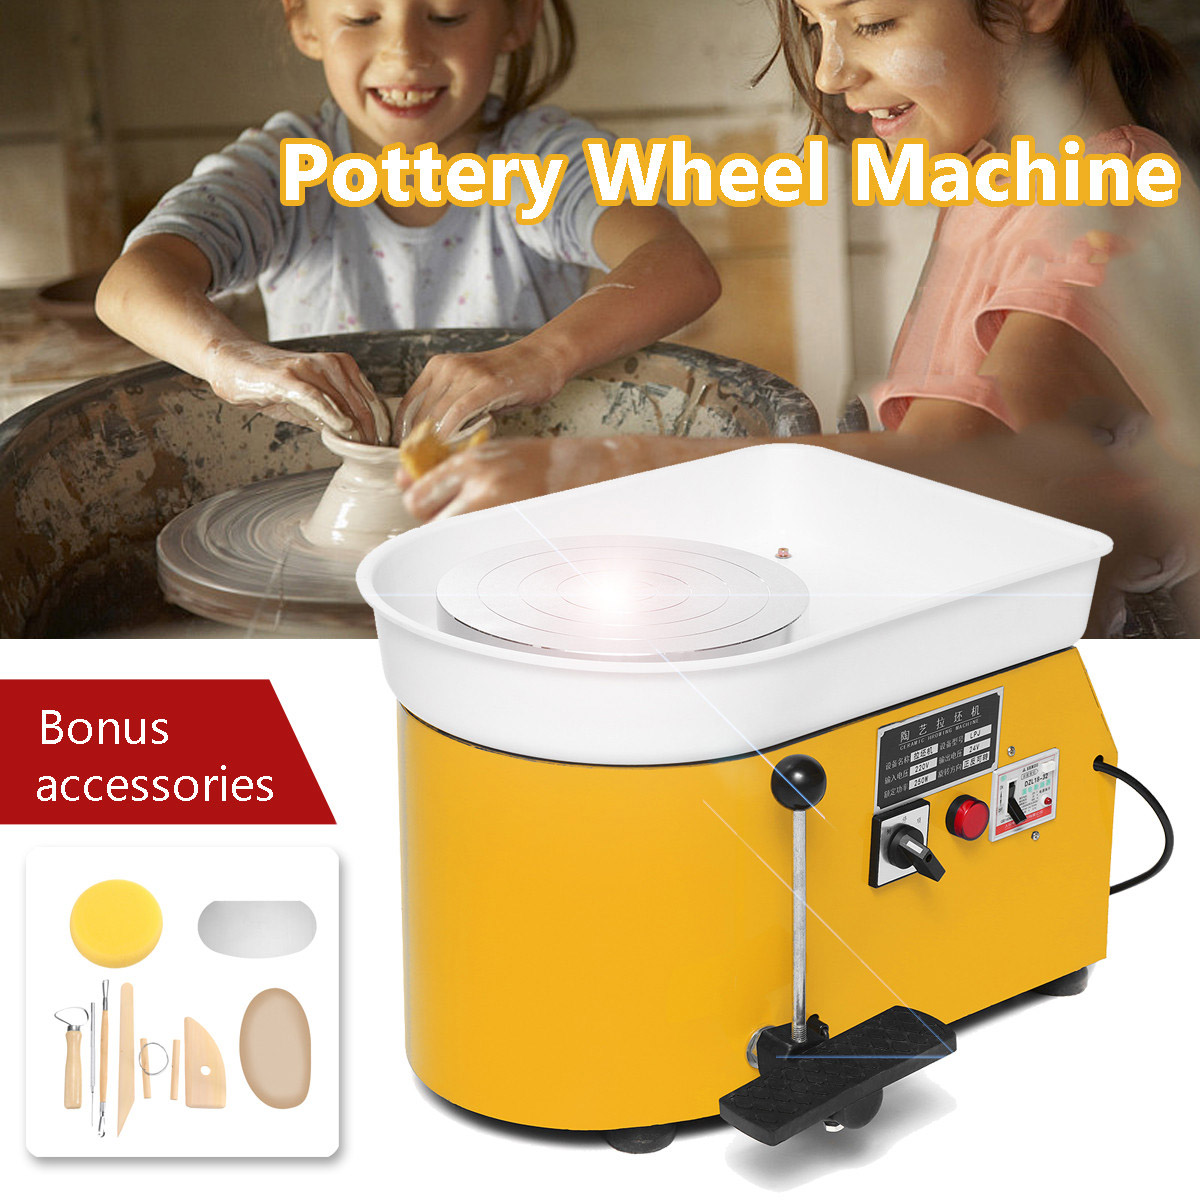 3 Colors 110V/220V Pottery Forming Machine 250W/350W Electric Pottery Wheel DIY Clay Tool With Tray For Ceramic Work Ceramics